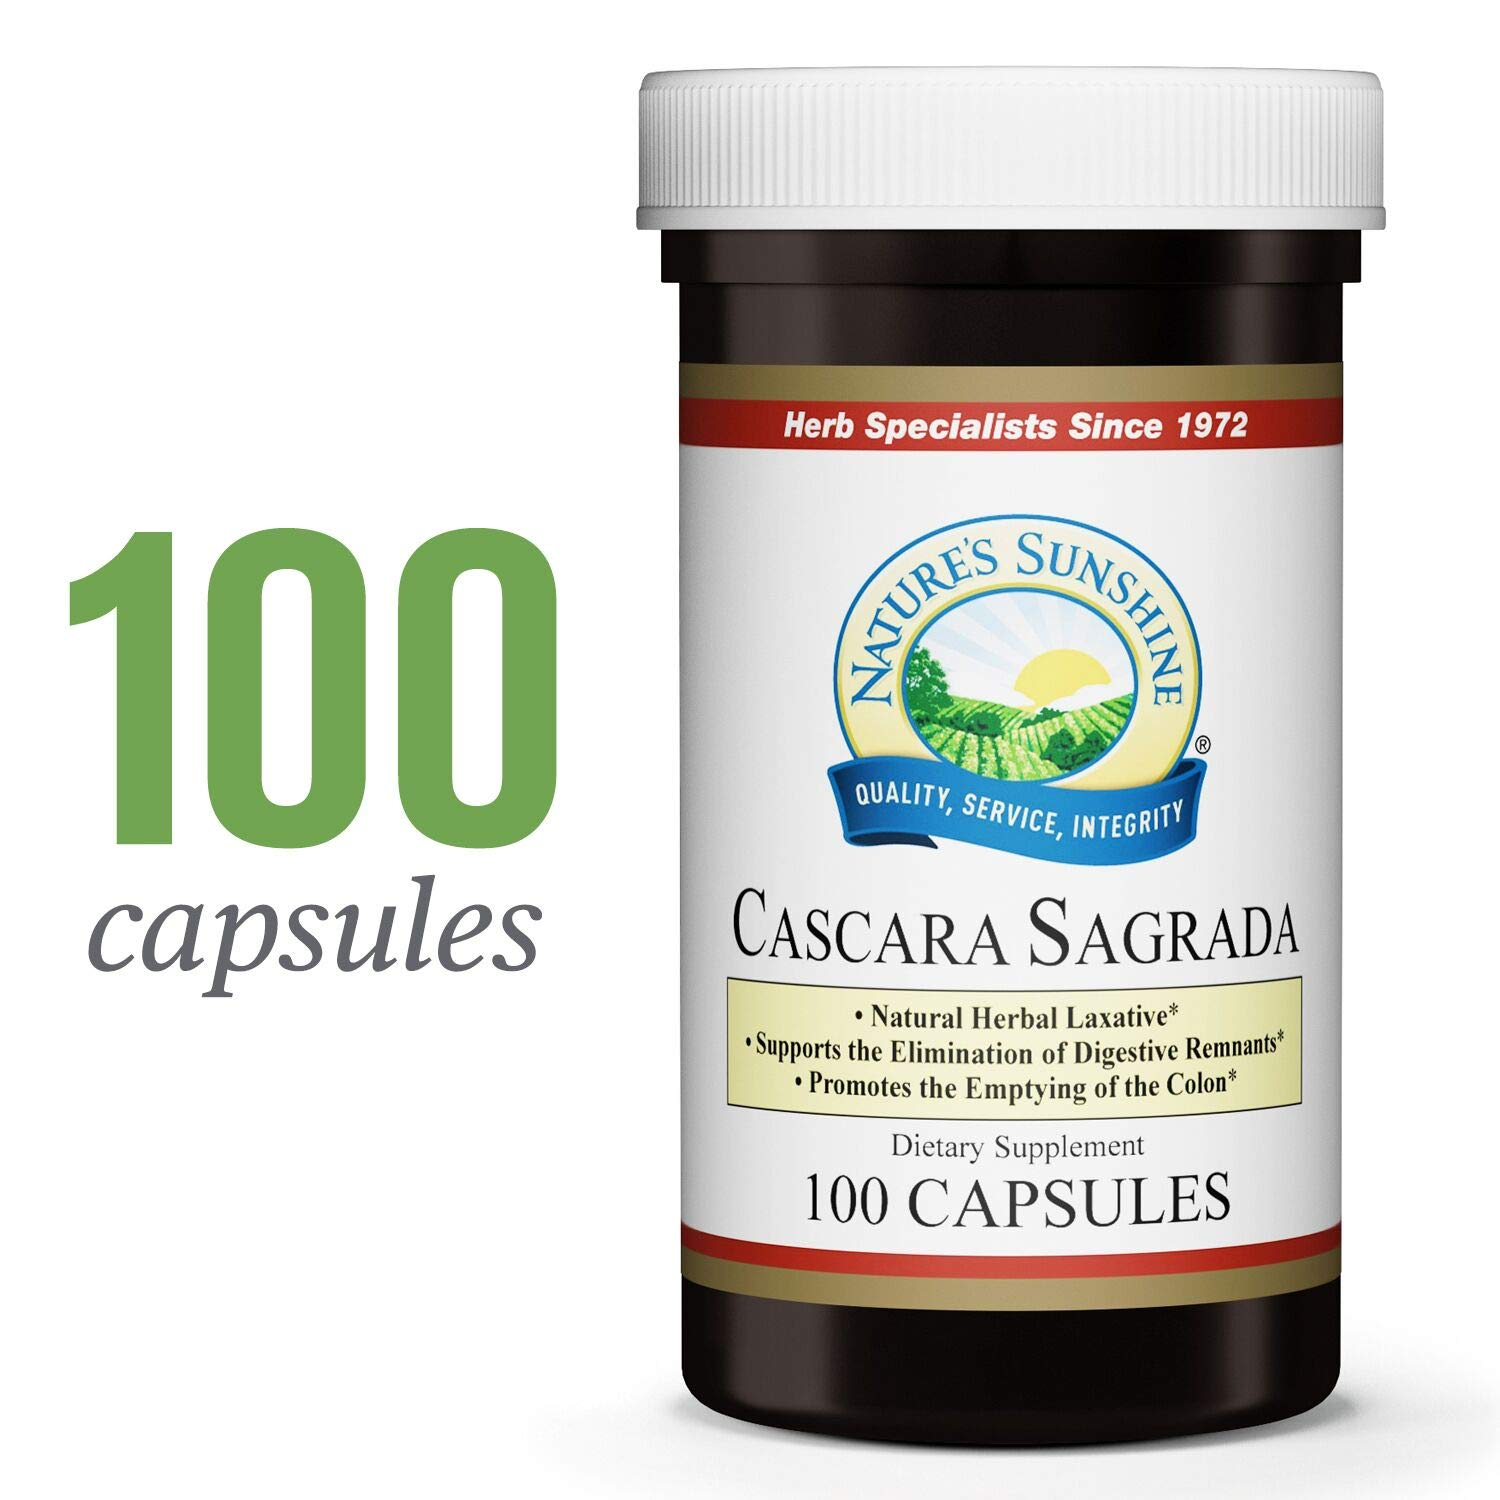 Nature's Sunshine Cascara Sagrada, 100 Capsules | Natural Laxative from Herbs Helps to Cleanse The Colon and Support Intestinal System Function by Nature's Sunshine